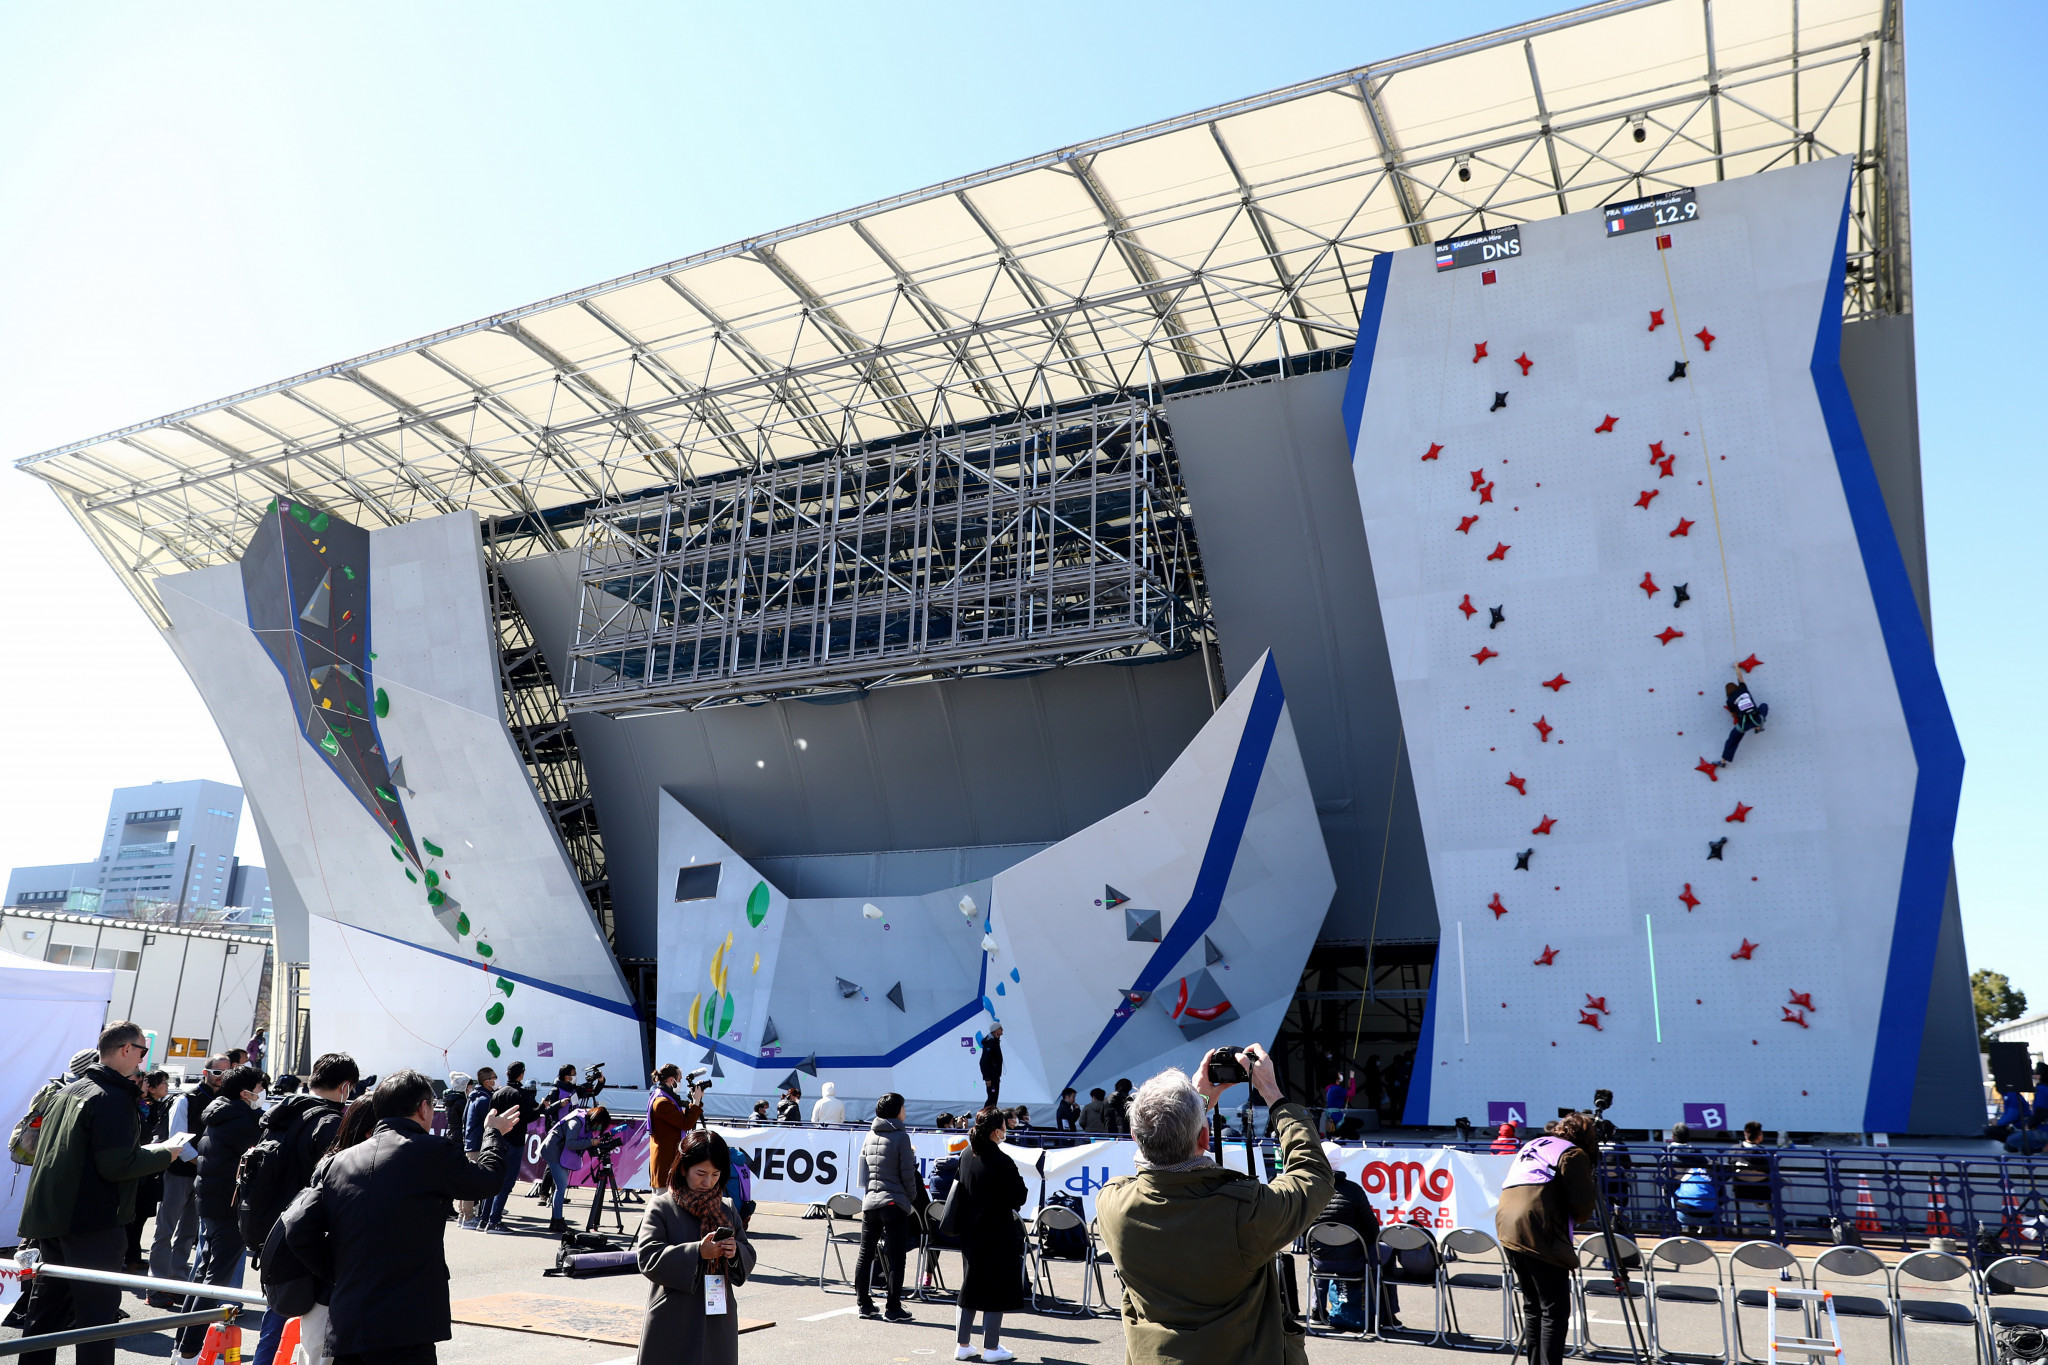 Sport climbing is set to take place at the Aomi Urban Sports Park during Tokyo 2020 ©Getty Images